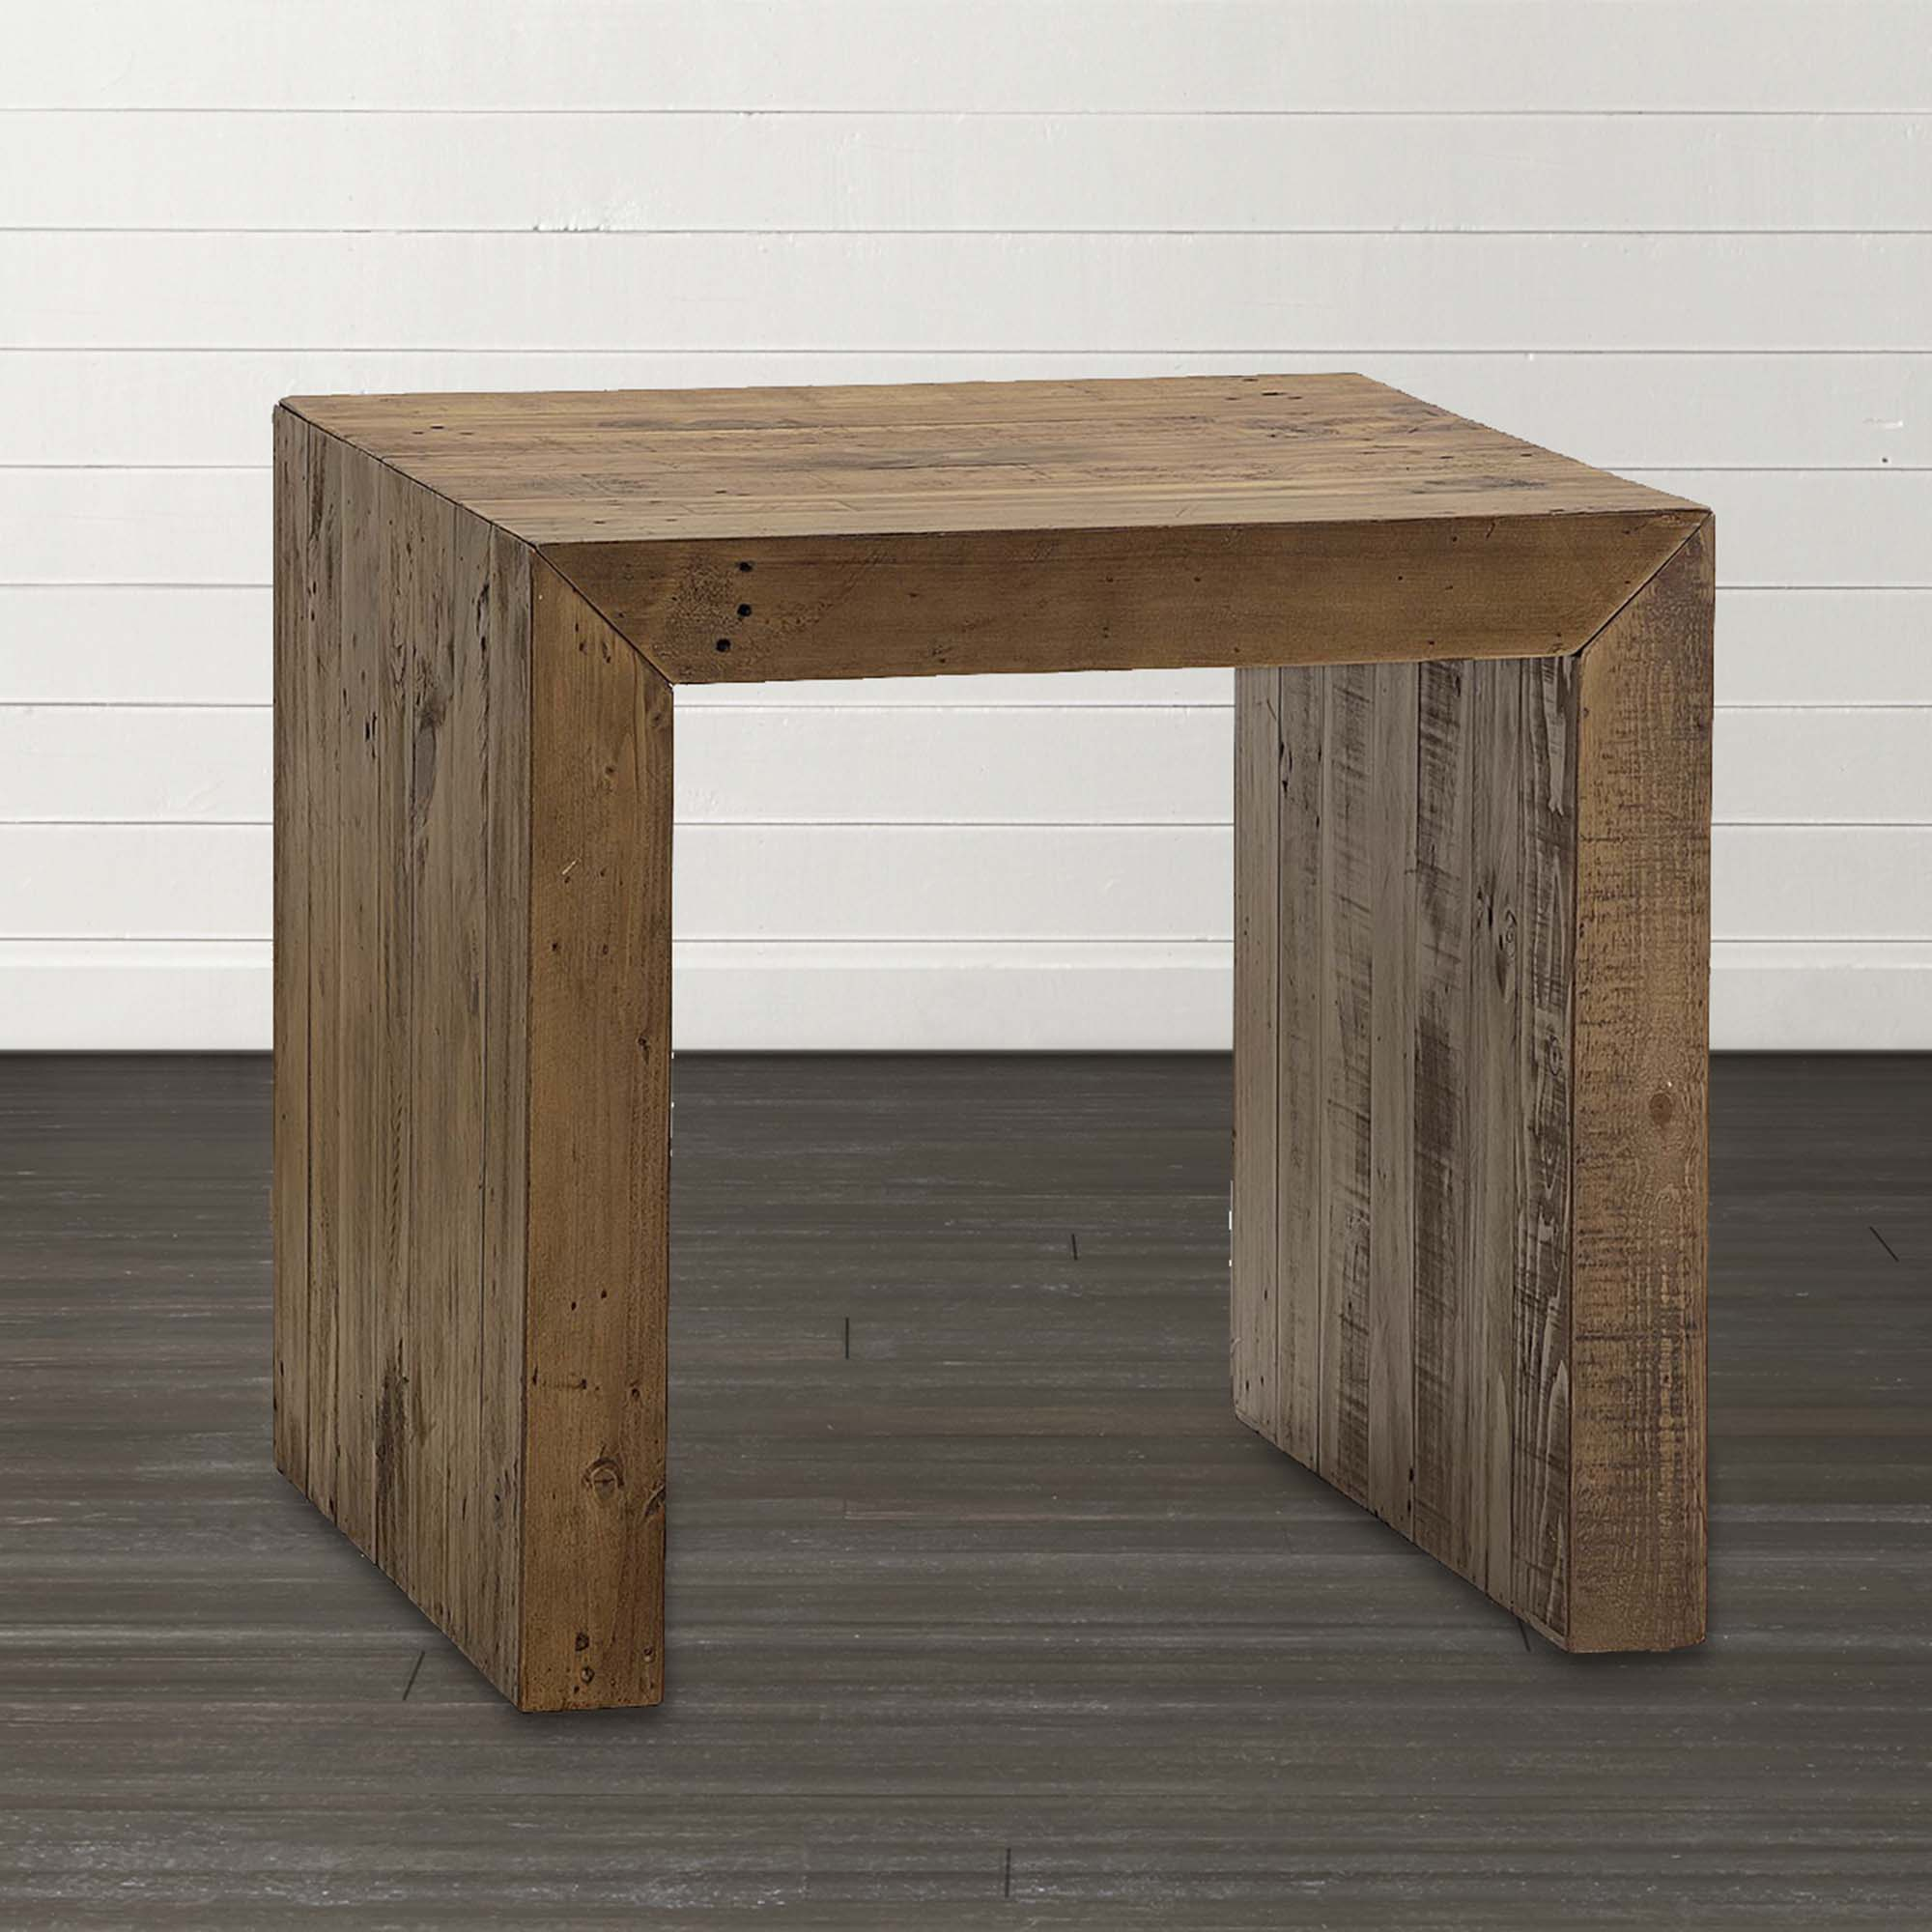 salvaged timber square end table bassett home furnishings wood anton accent brown glass coffee ice container cube style dining room chest pedestal patio tablecloth mint green